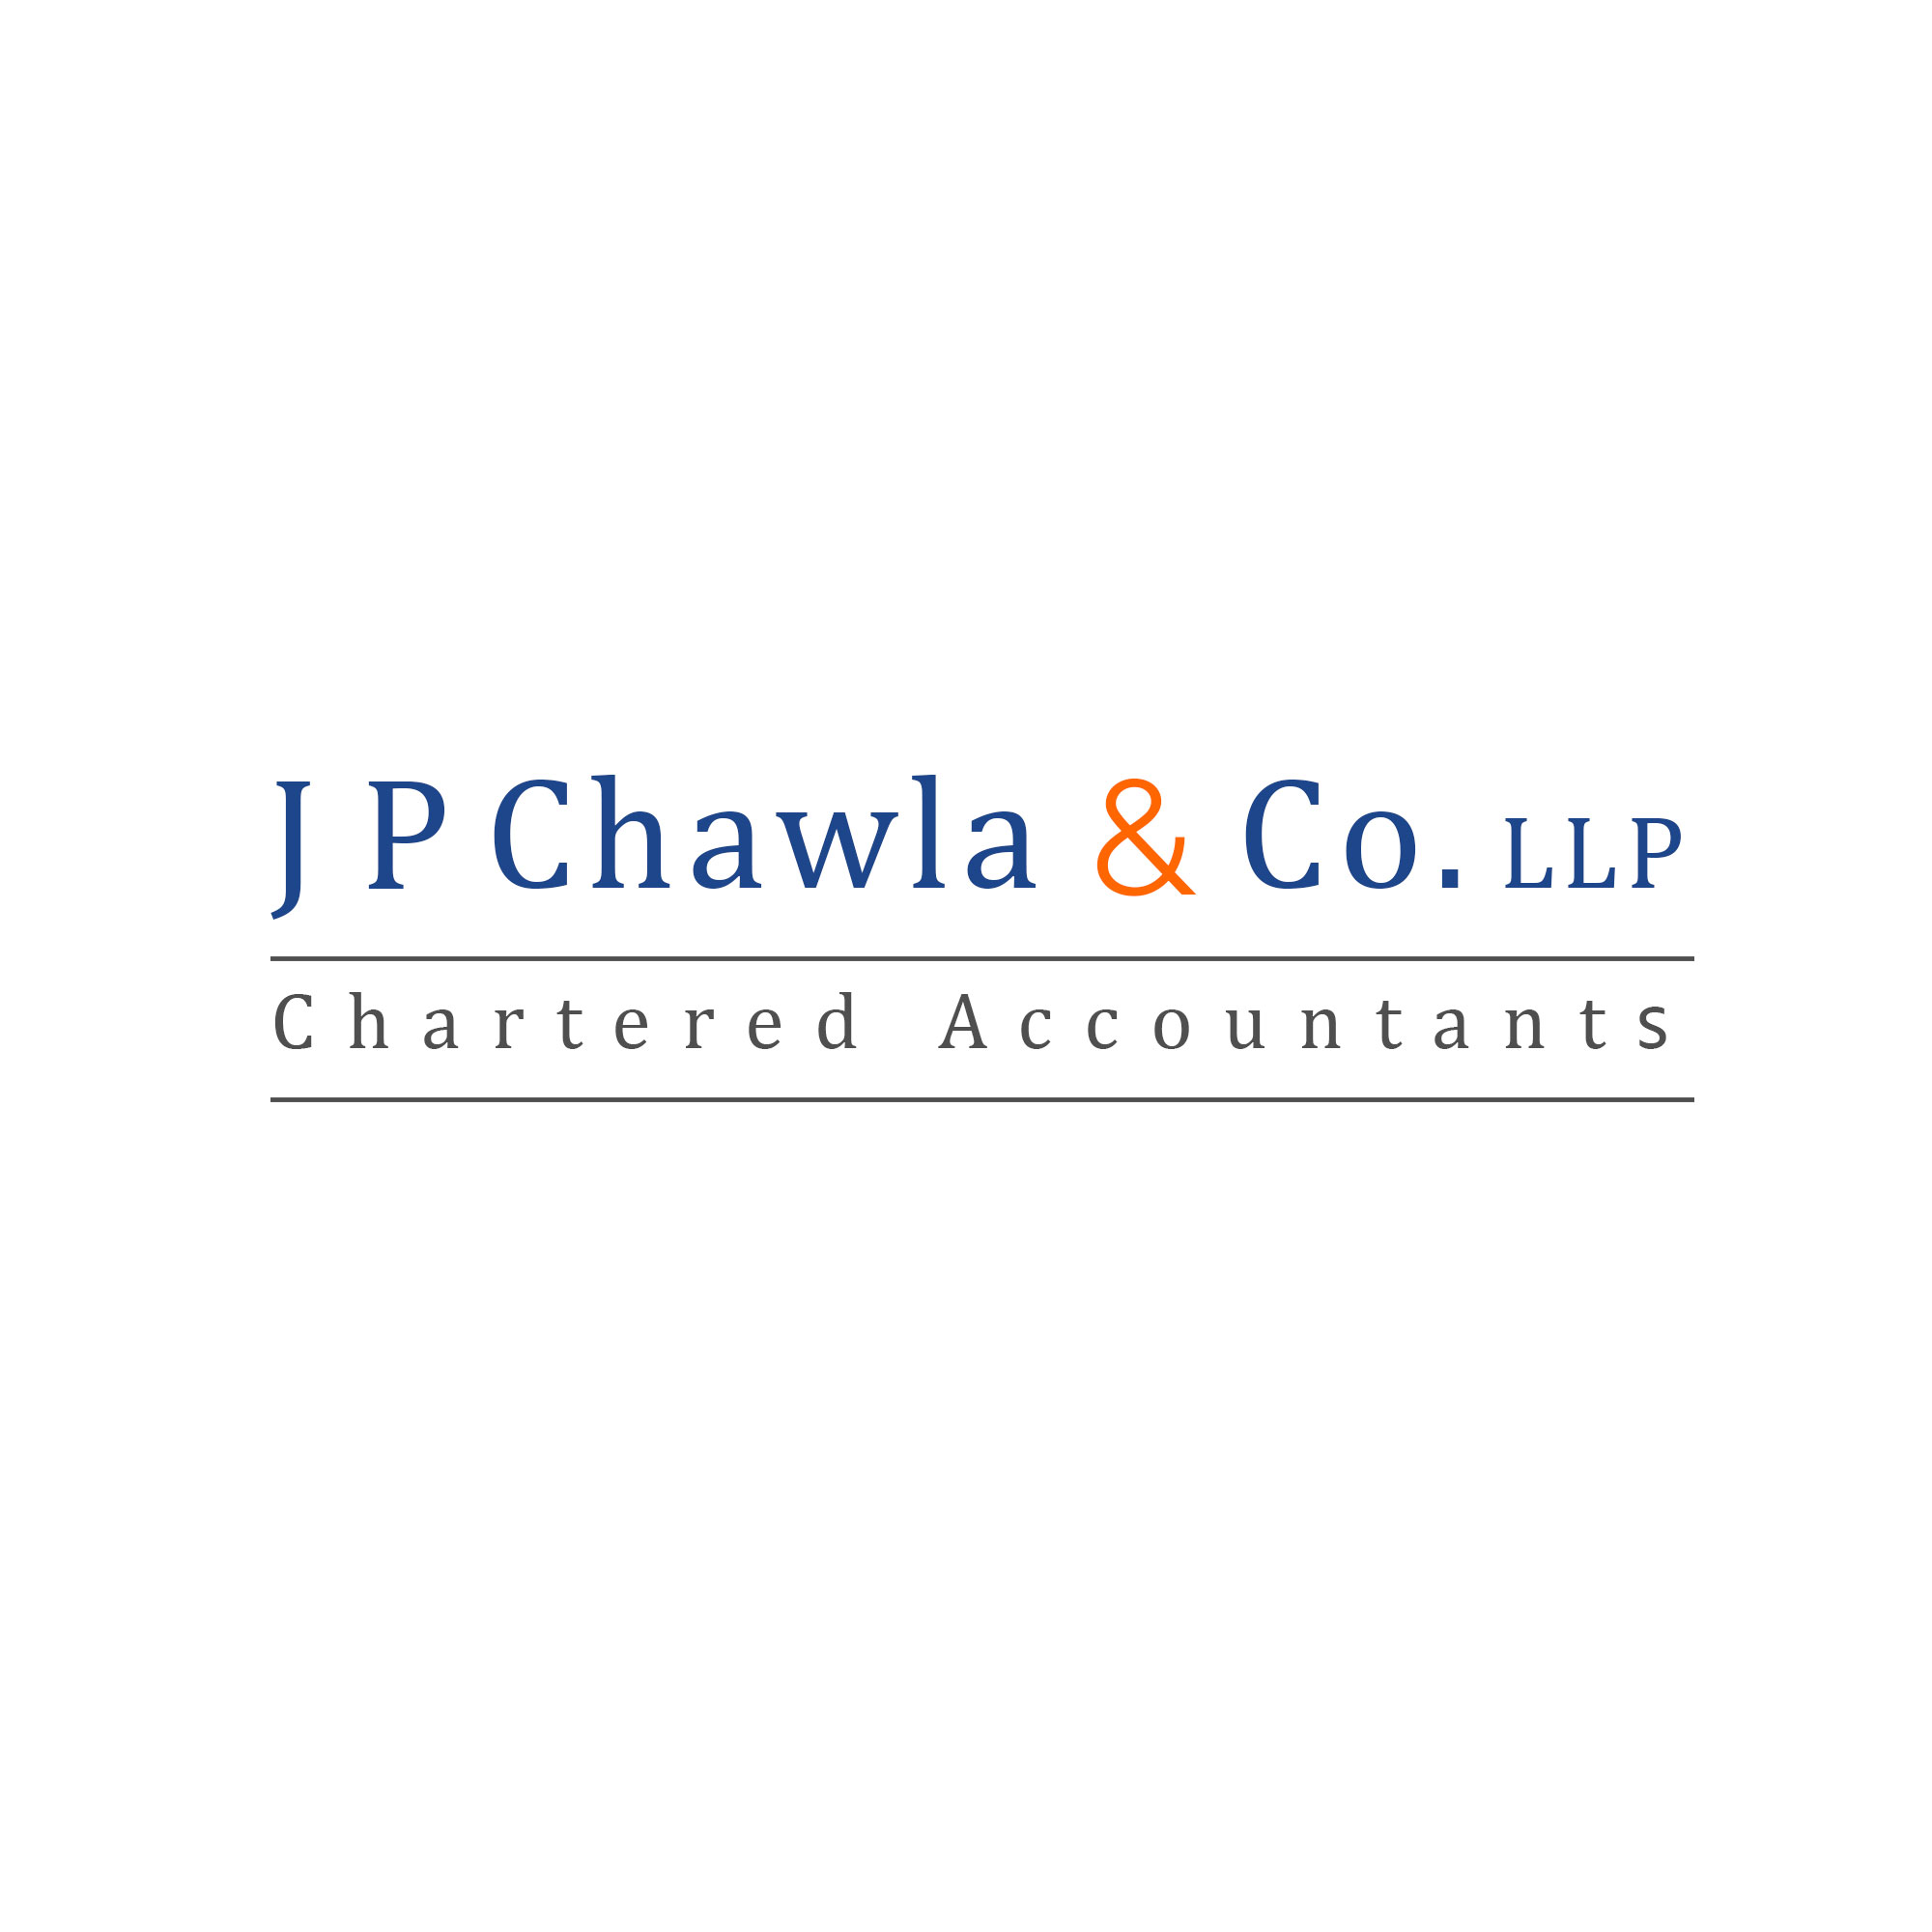 Compliance Officer in Indirect Taxation